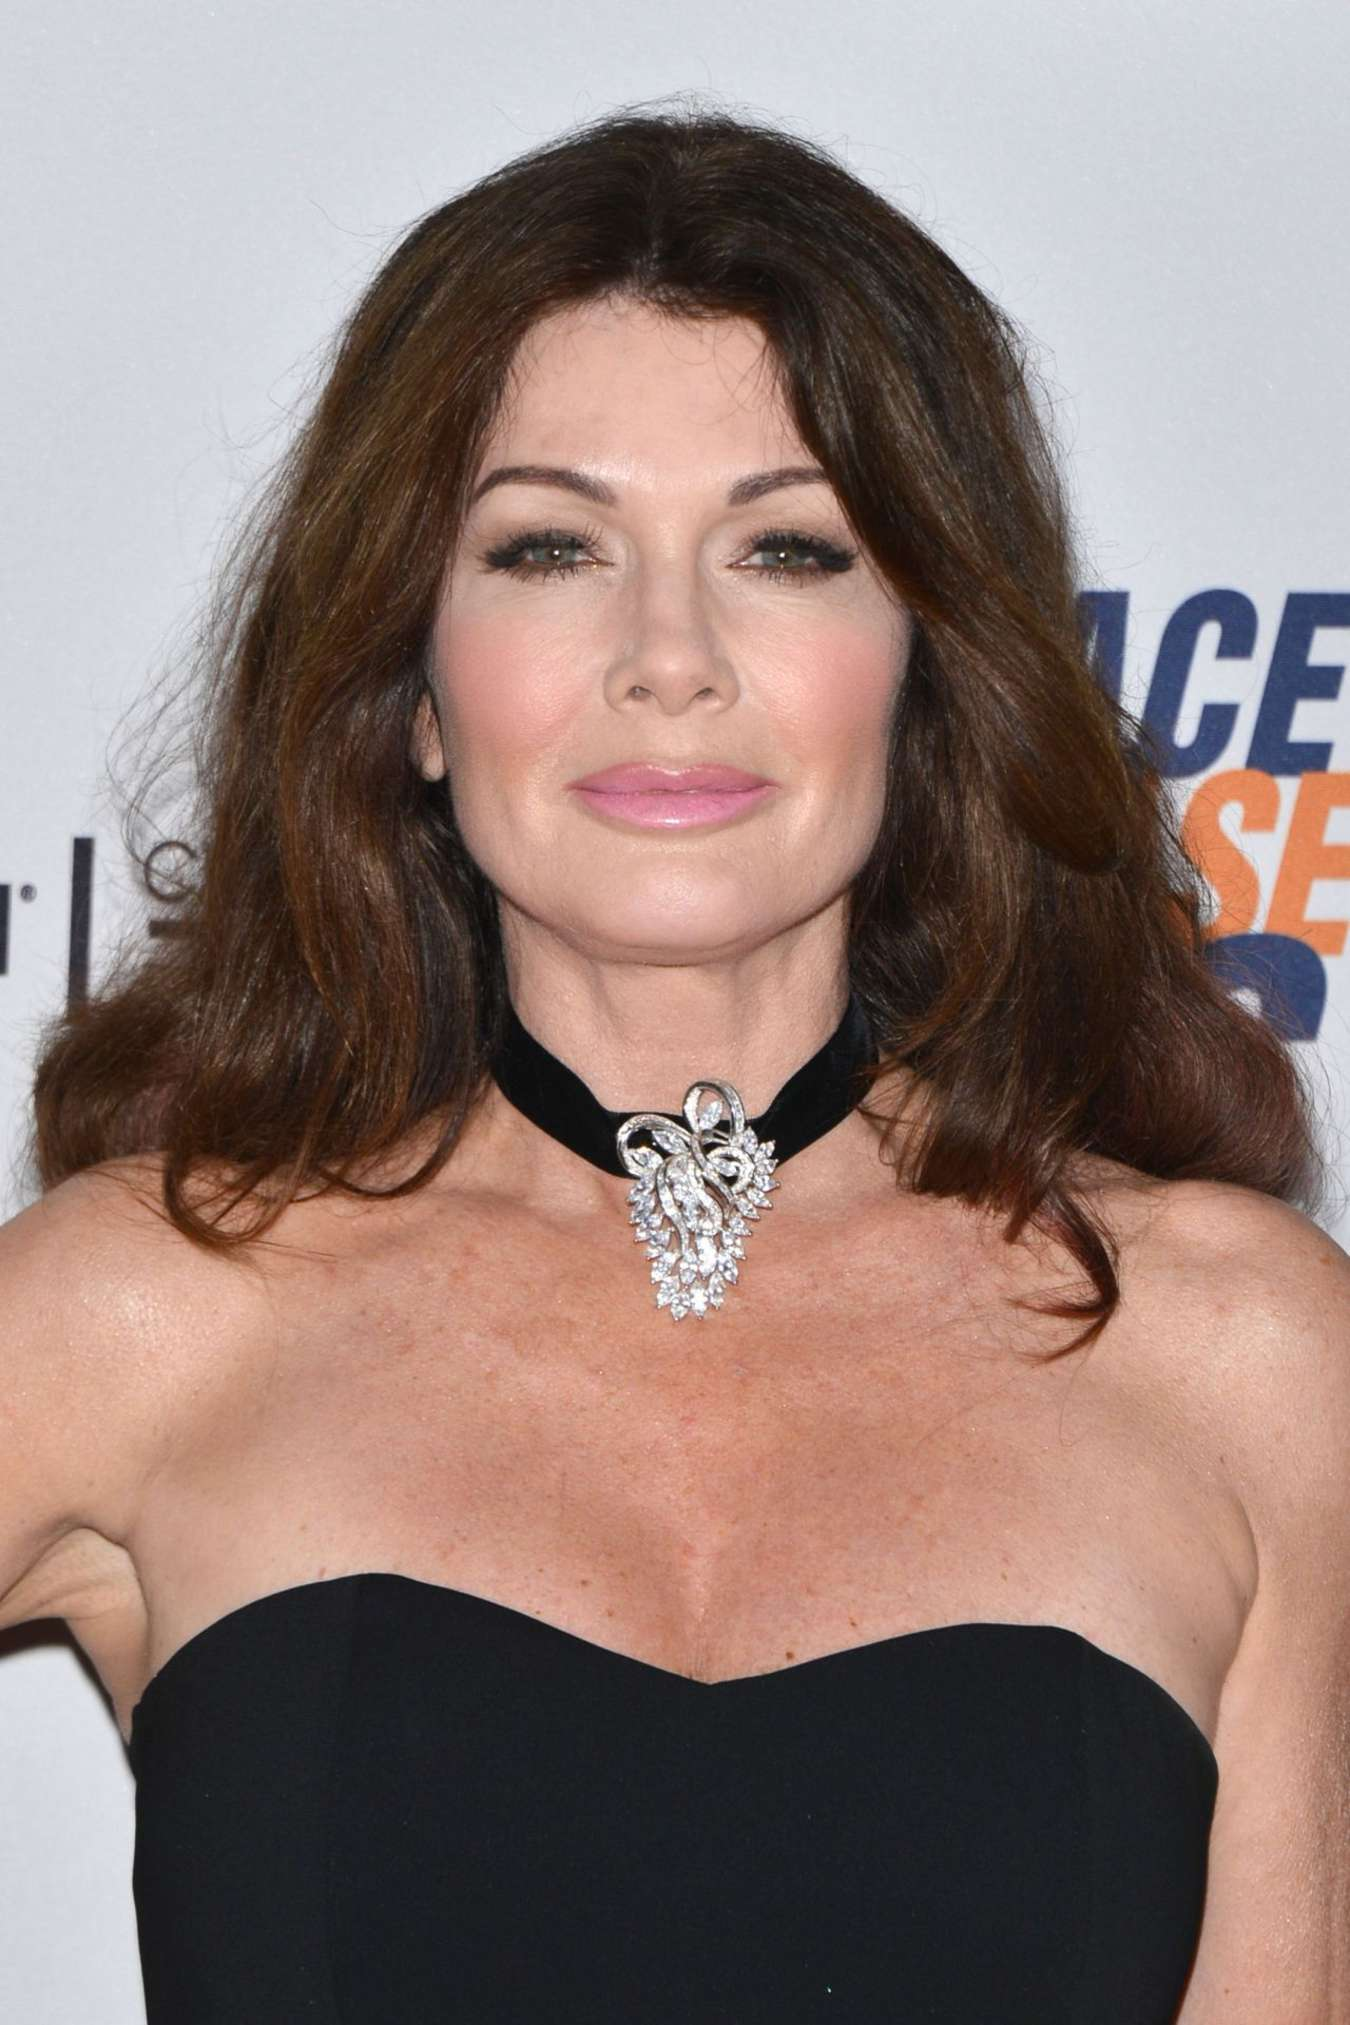 Lisa Vanderpump Annual Race To Erase MS Event in Century City